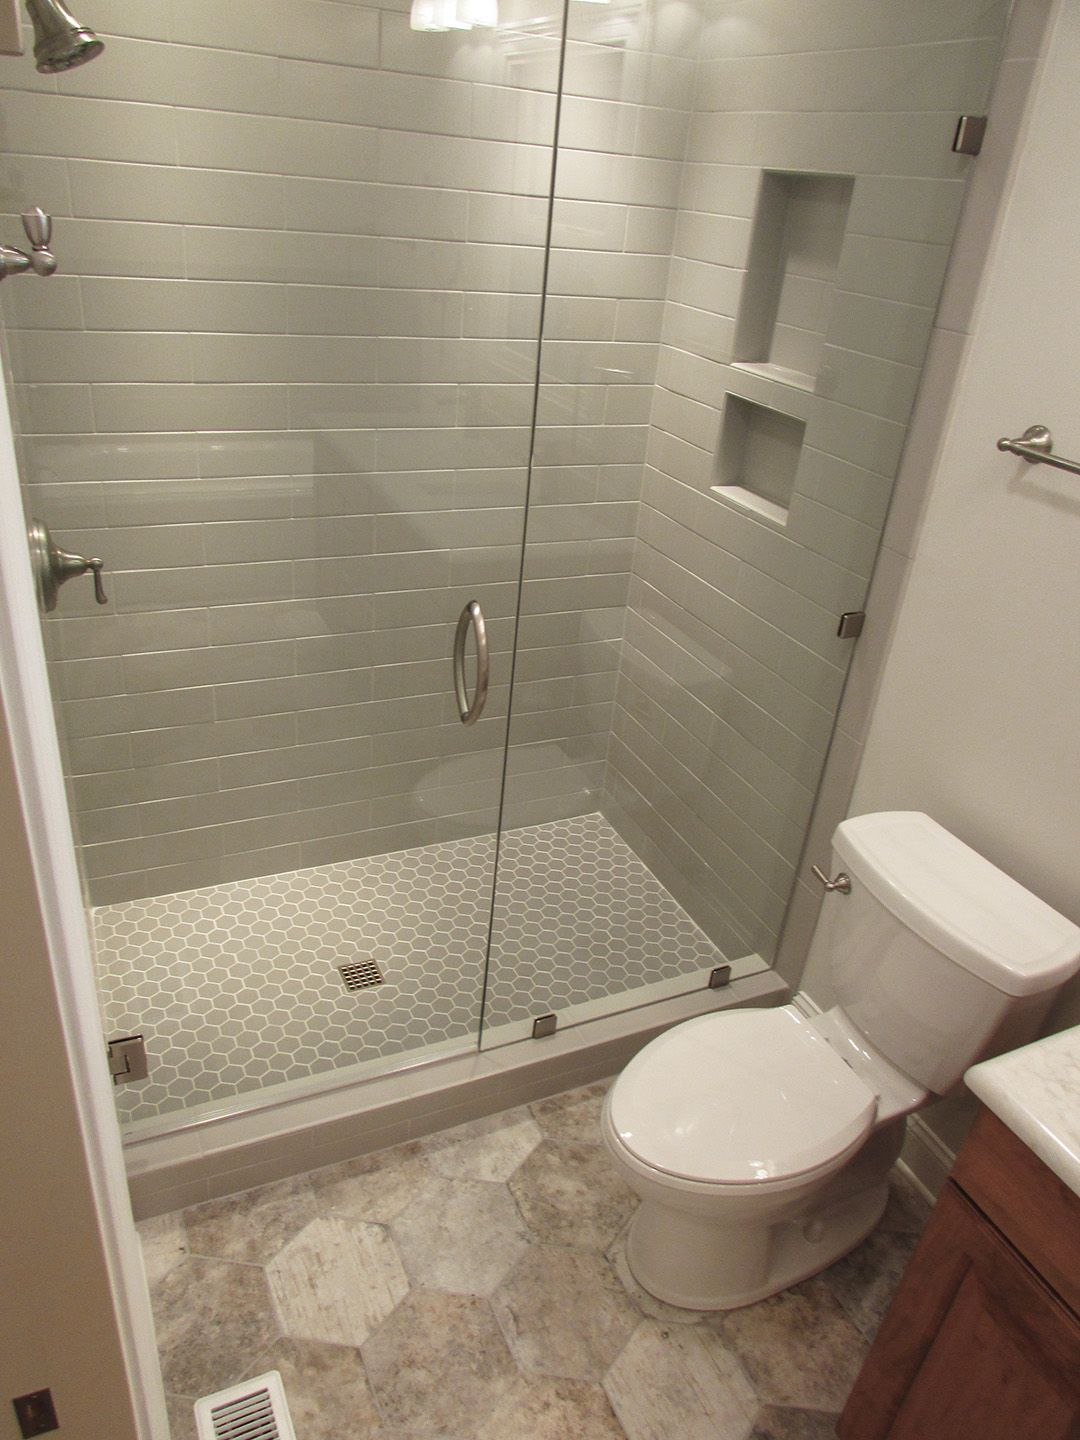 Master Shower Featuring Subway Hex Tile In 2020 Bathroom Interior Design Master Shower Bathroom Interior